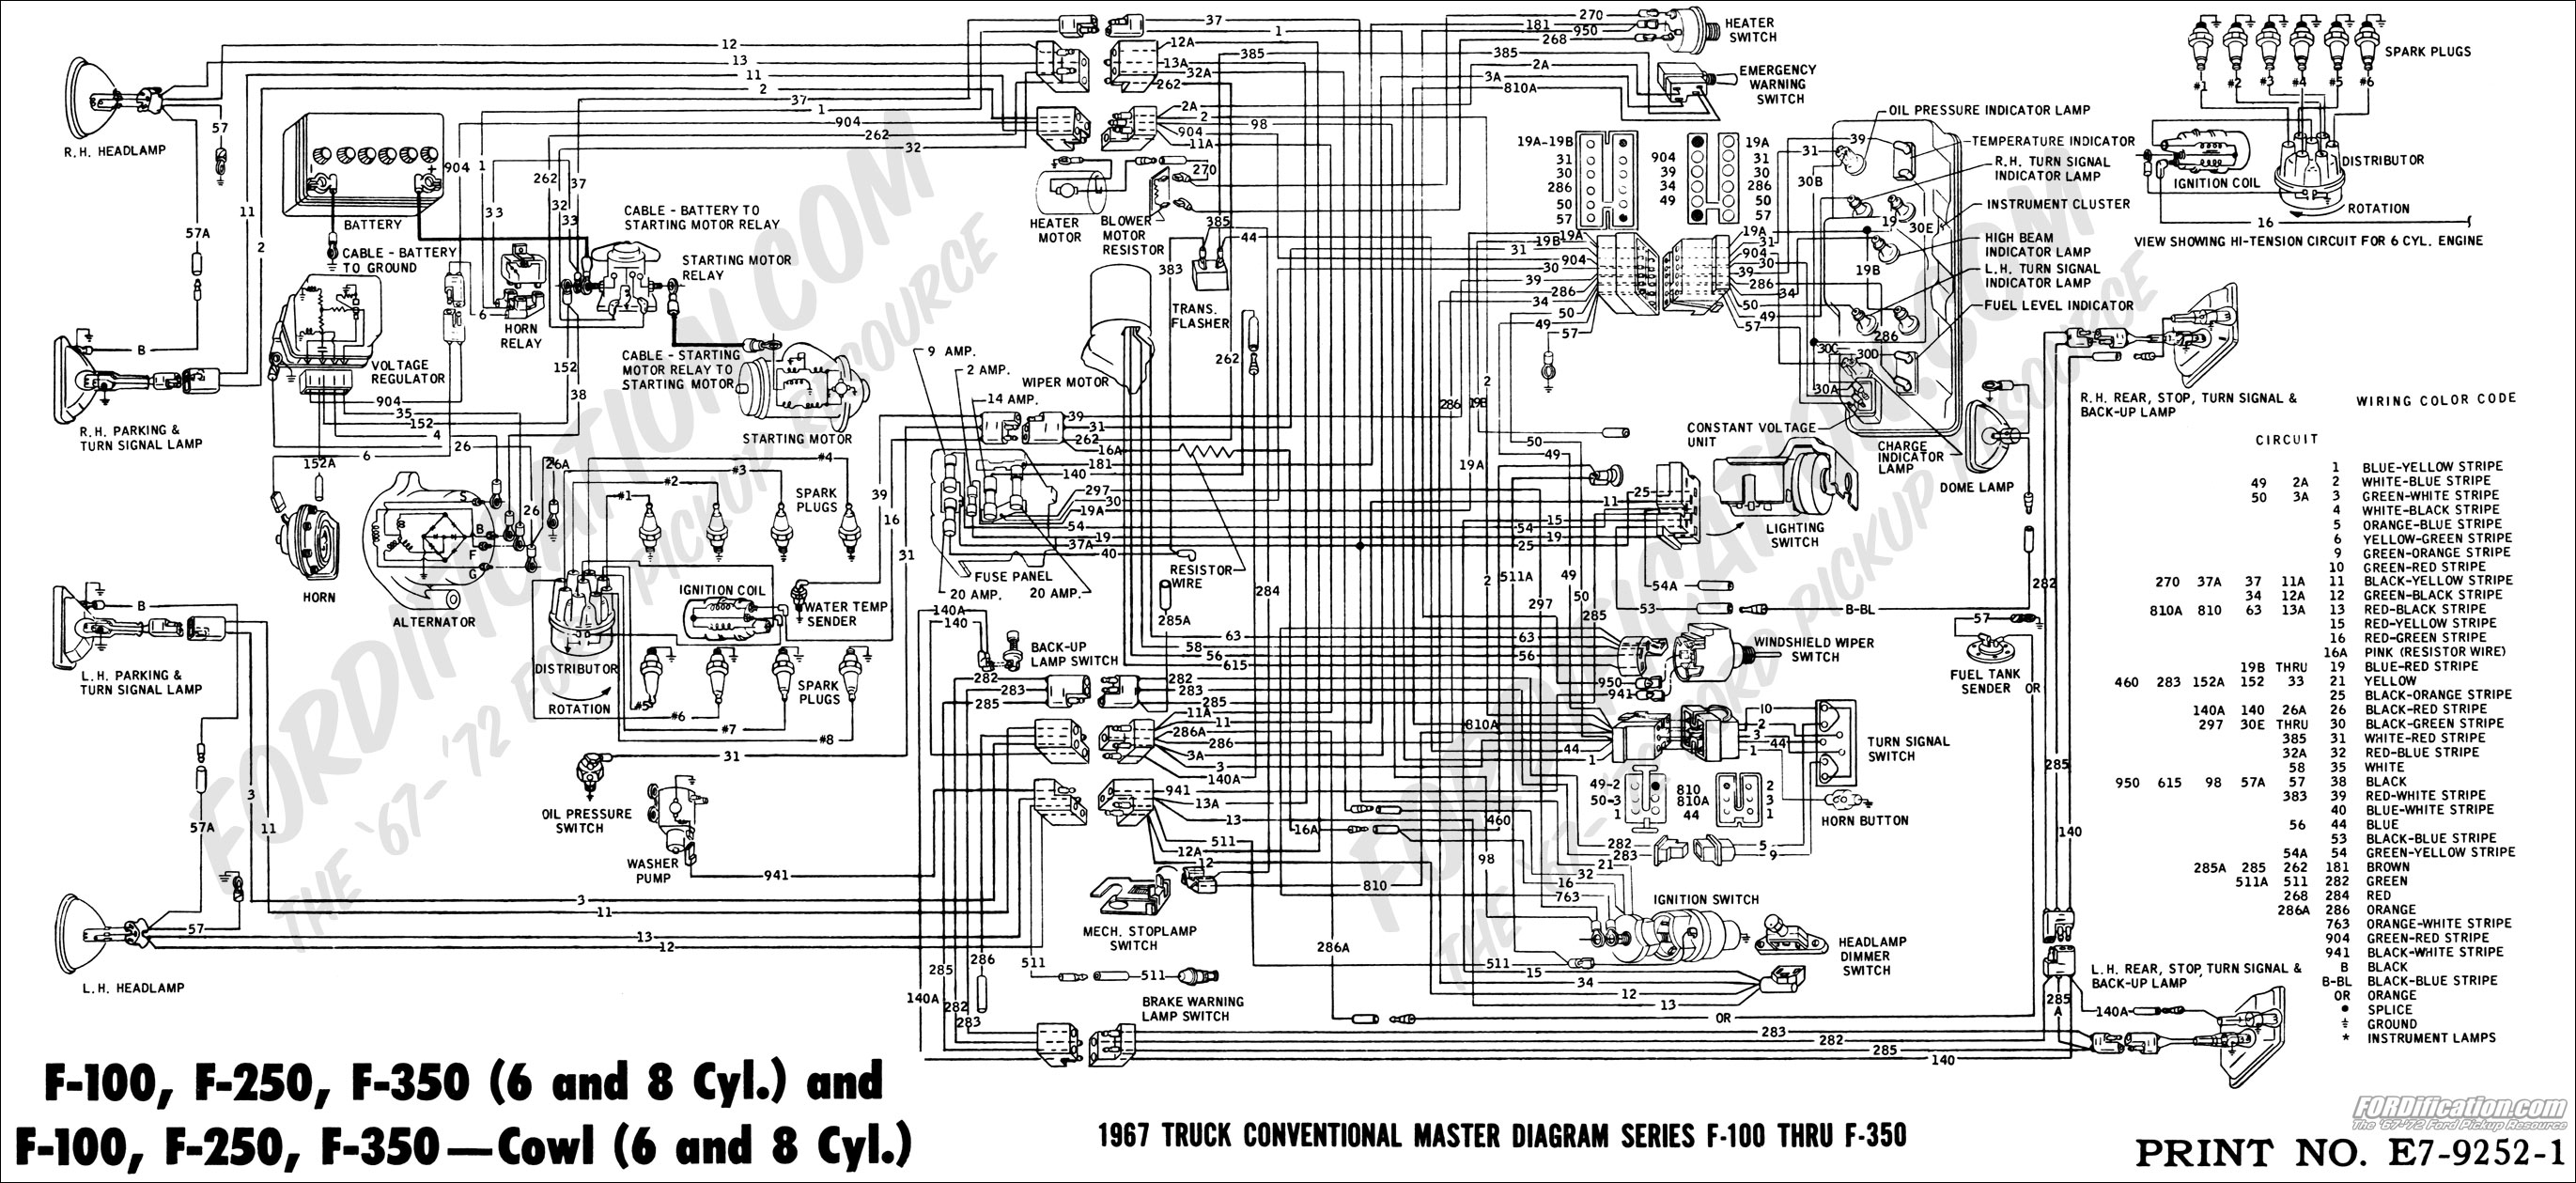 67masterdiagram 1992 f150 wiring diagram neutral wiring diagram 1992 f150 \u2022 wiring 1995 ford f150 fuel pump wiring diagram at reclaimingppi.co